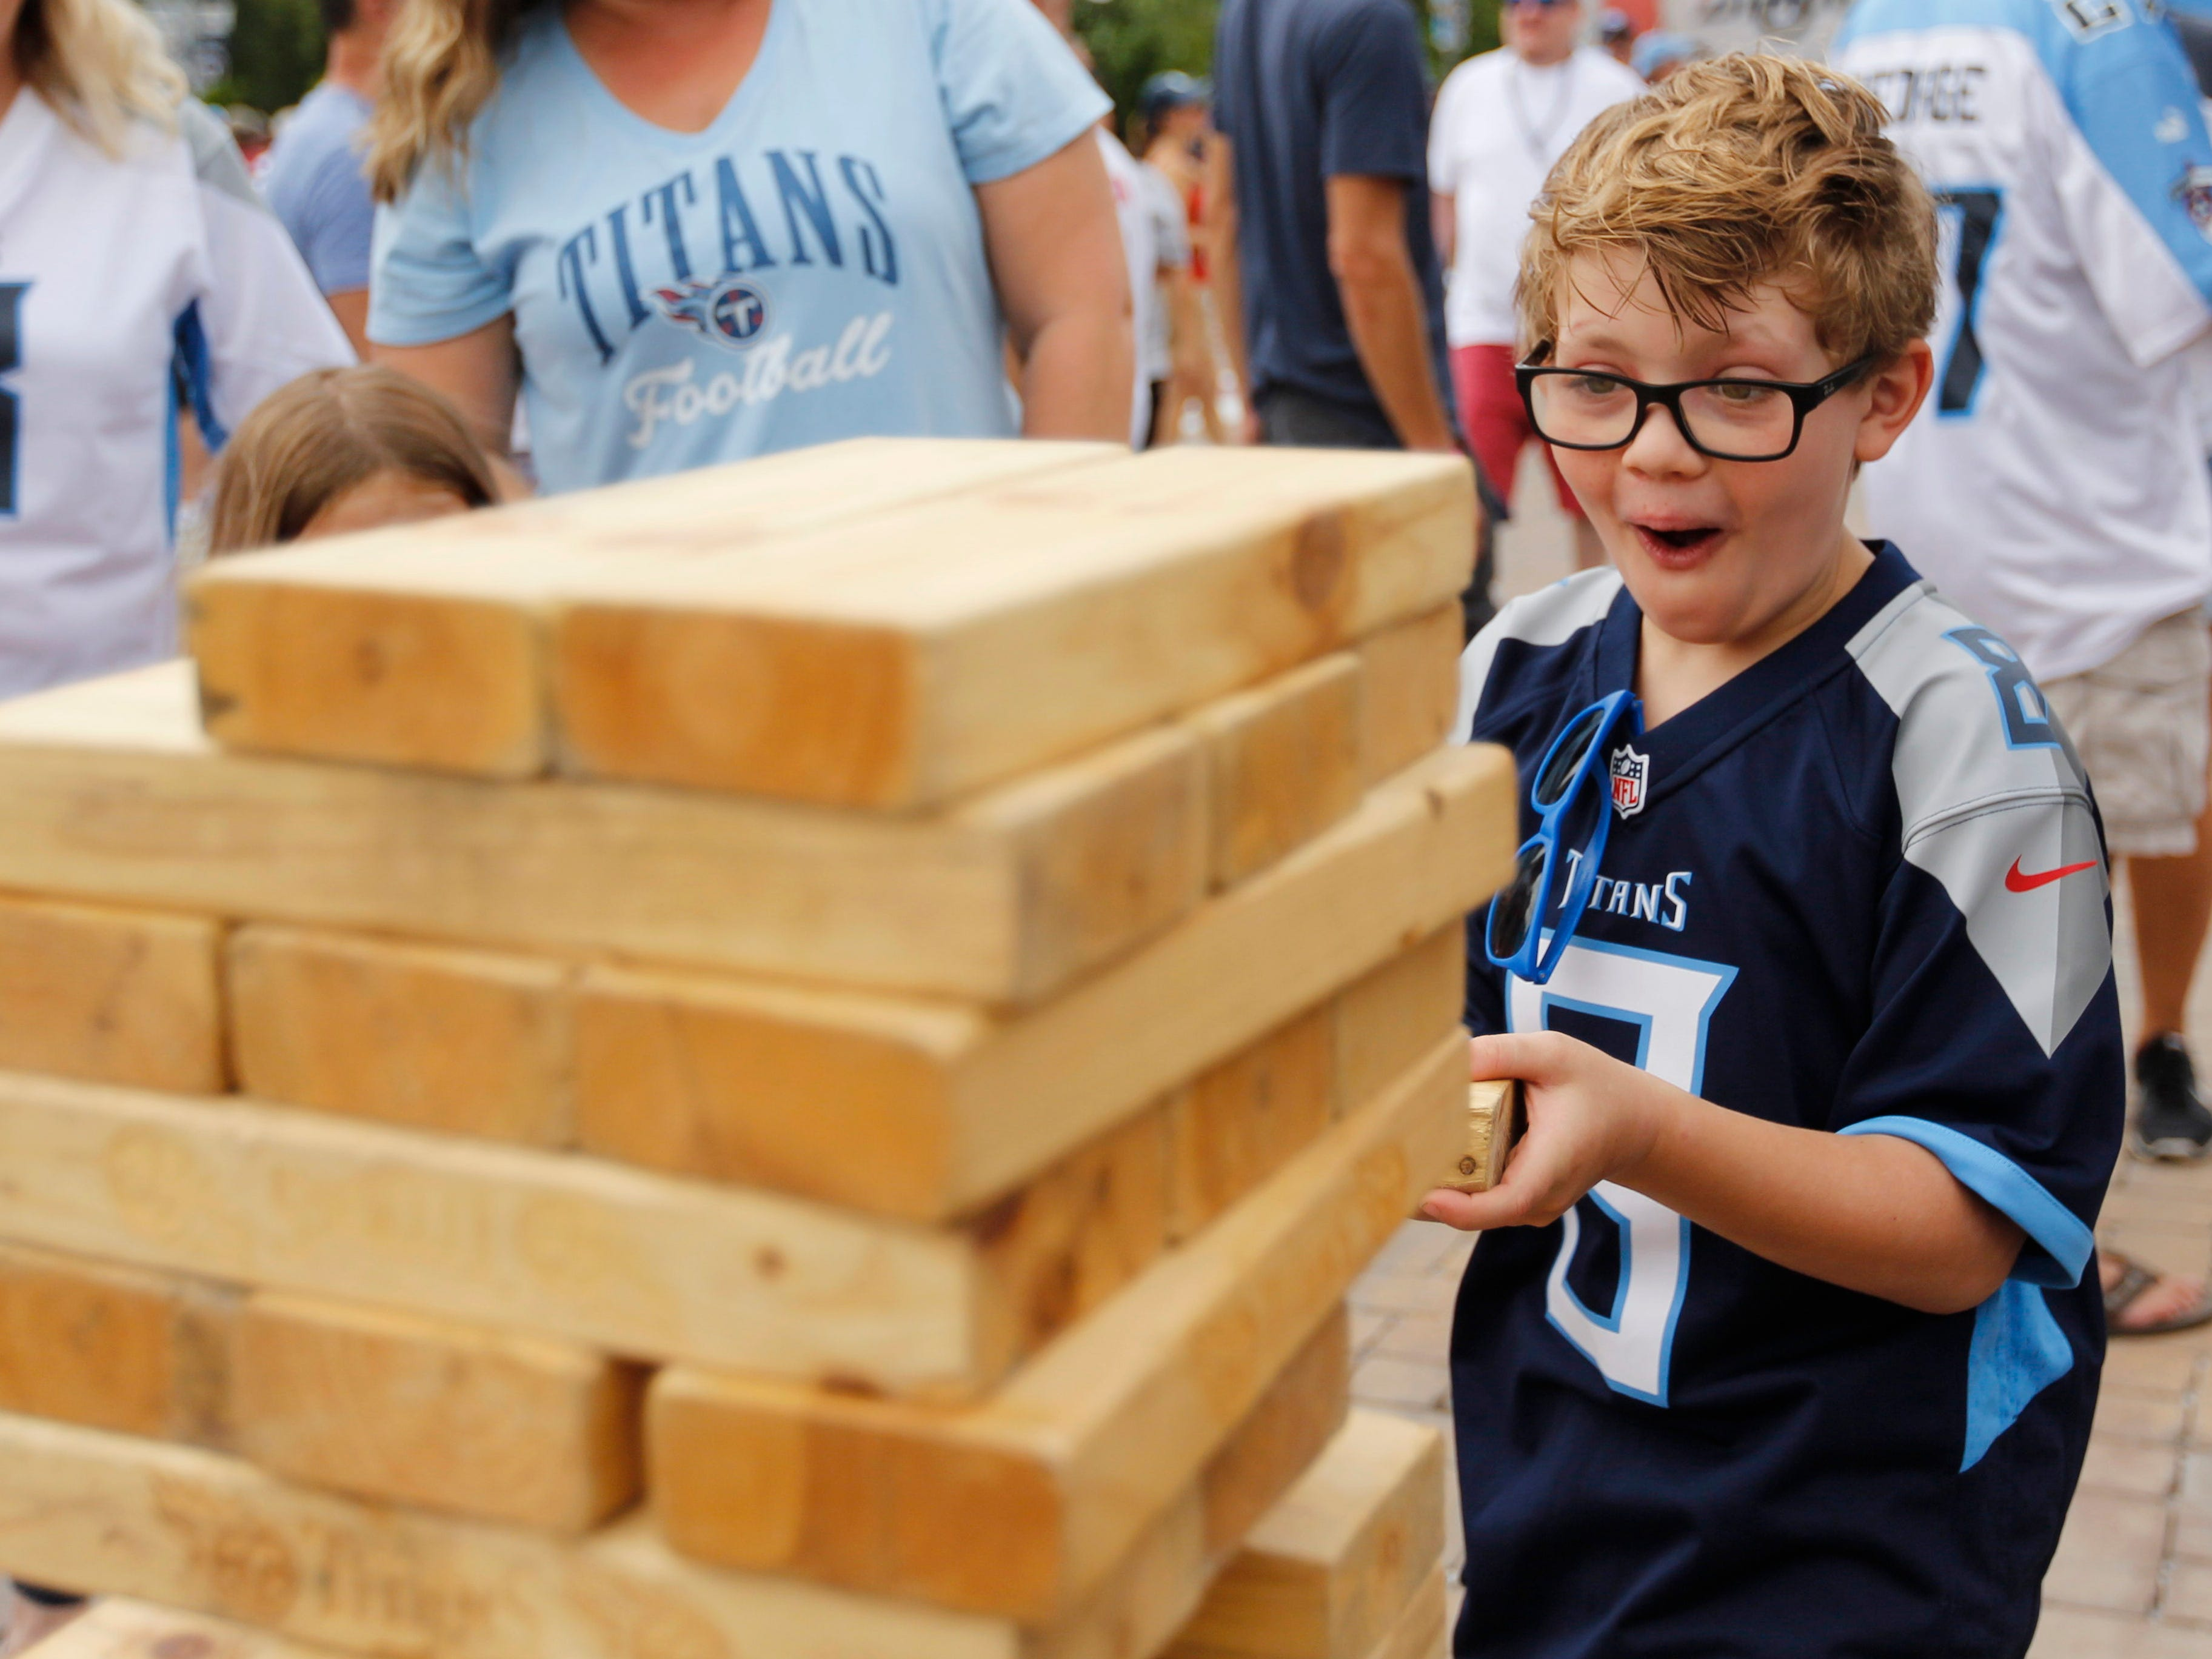 Conner Wilson is excited while he plays Jenga before the game at Nissan Stadium Sunday, Sept. 16, 2018, in Nashville, Tenn.